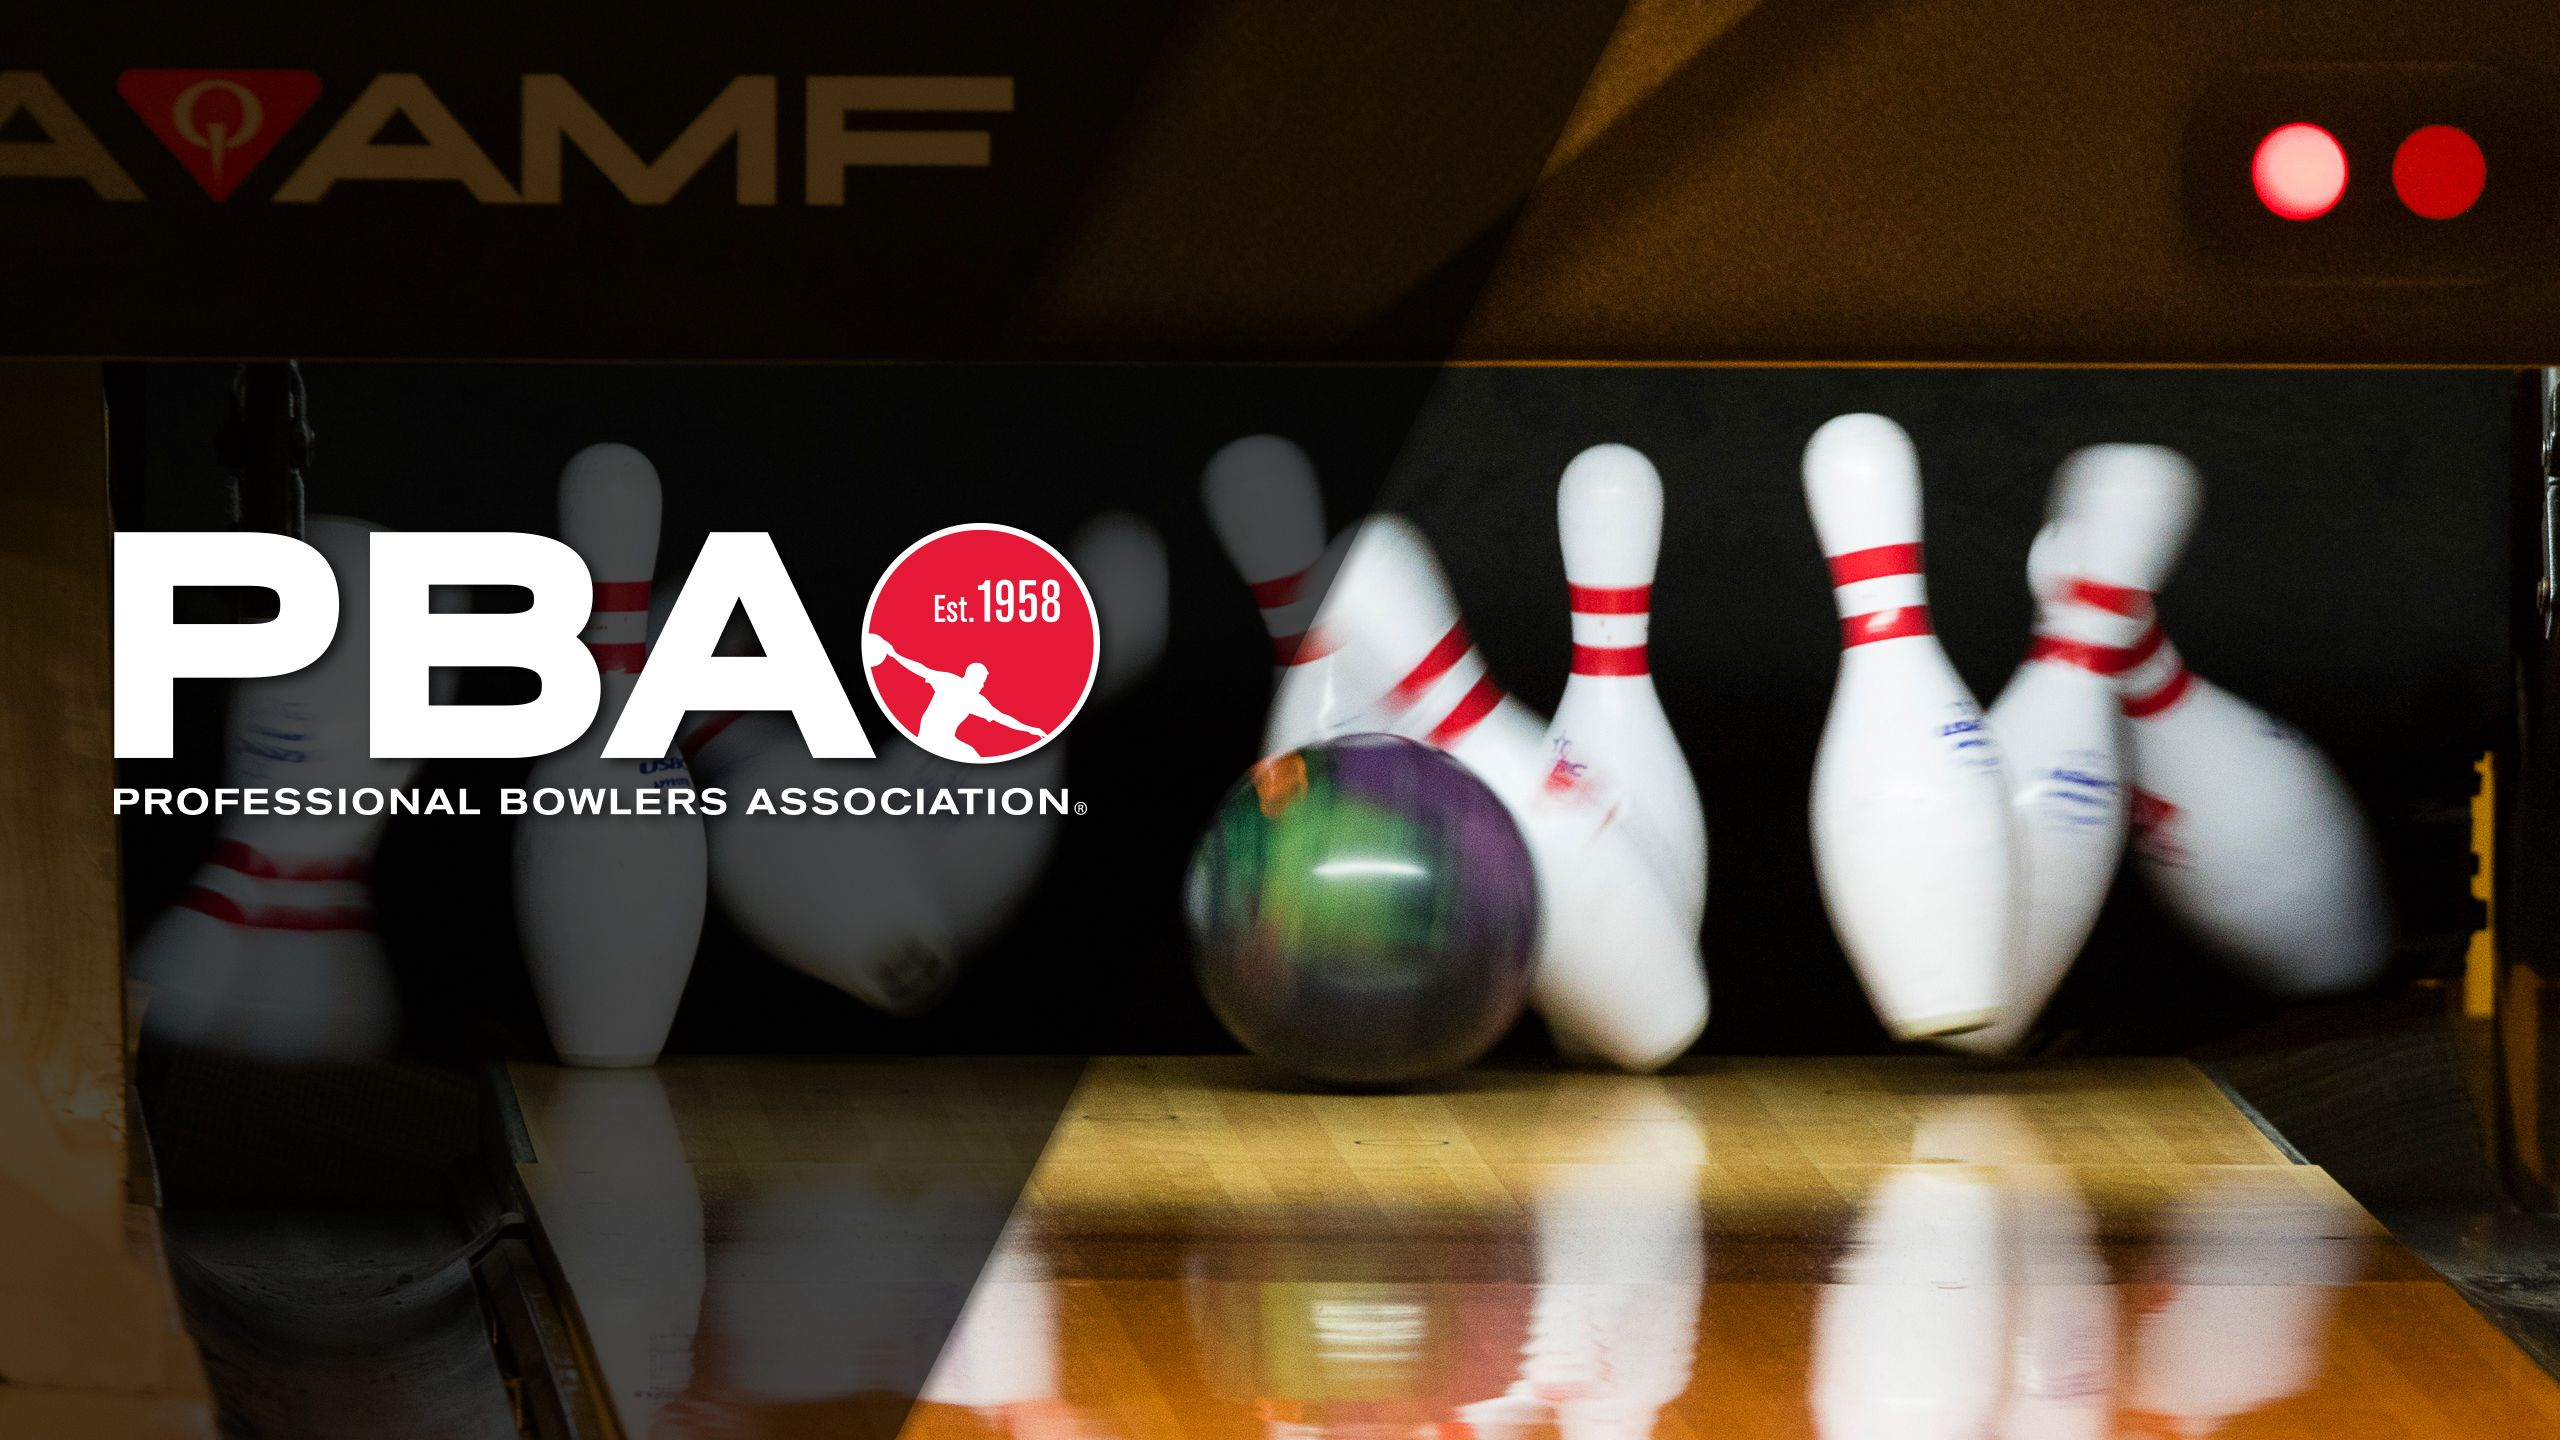 PBA Bowling: USA vs. The World